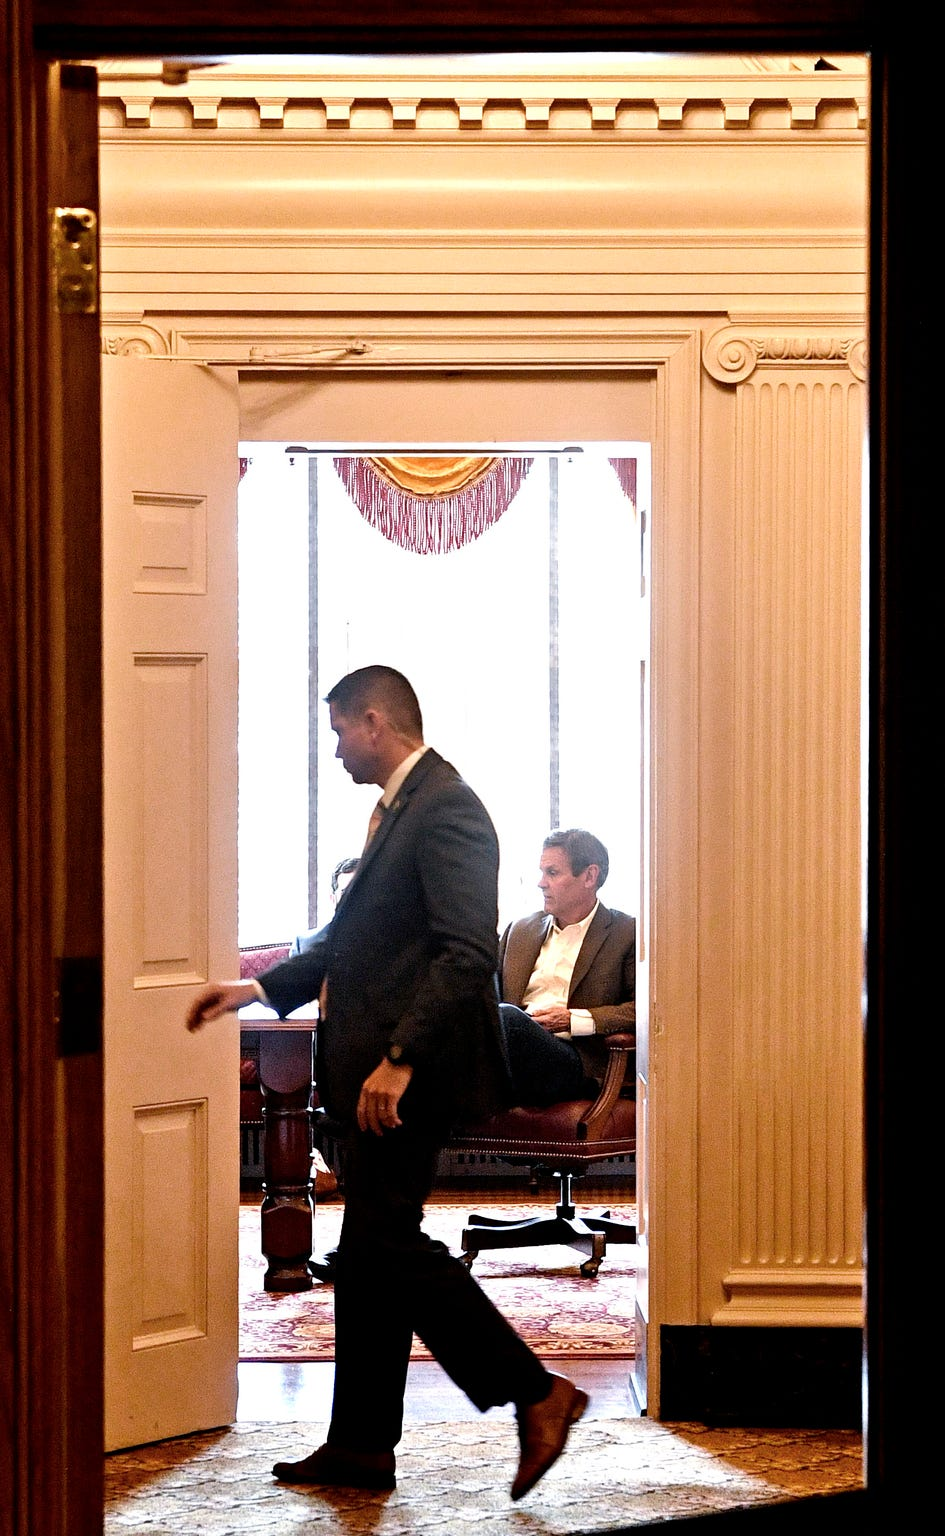 Security personnel close an open door to Gov. Bill Lee's conference room where he attends a meeting with senior staff at the Capitol in Nashville, Tenn. Monday, April 6, 2020.